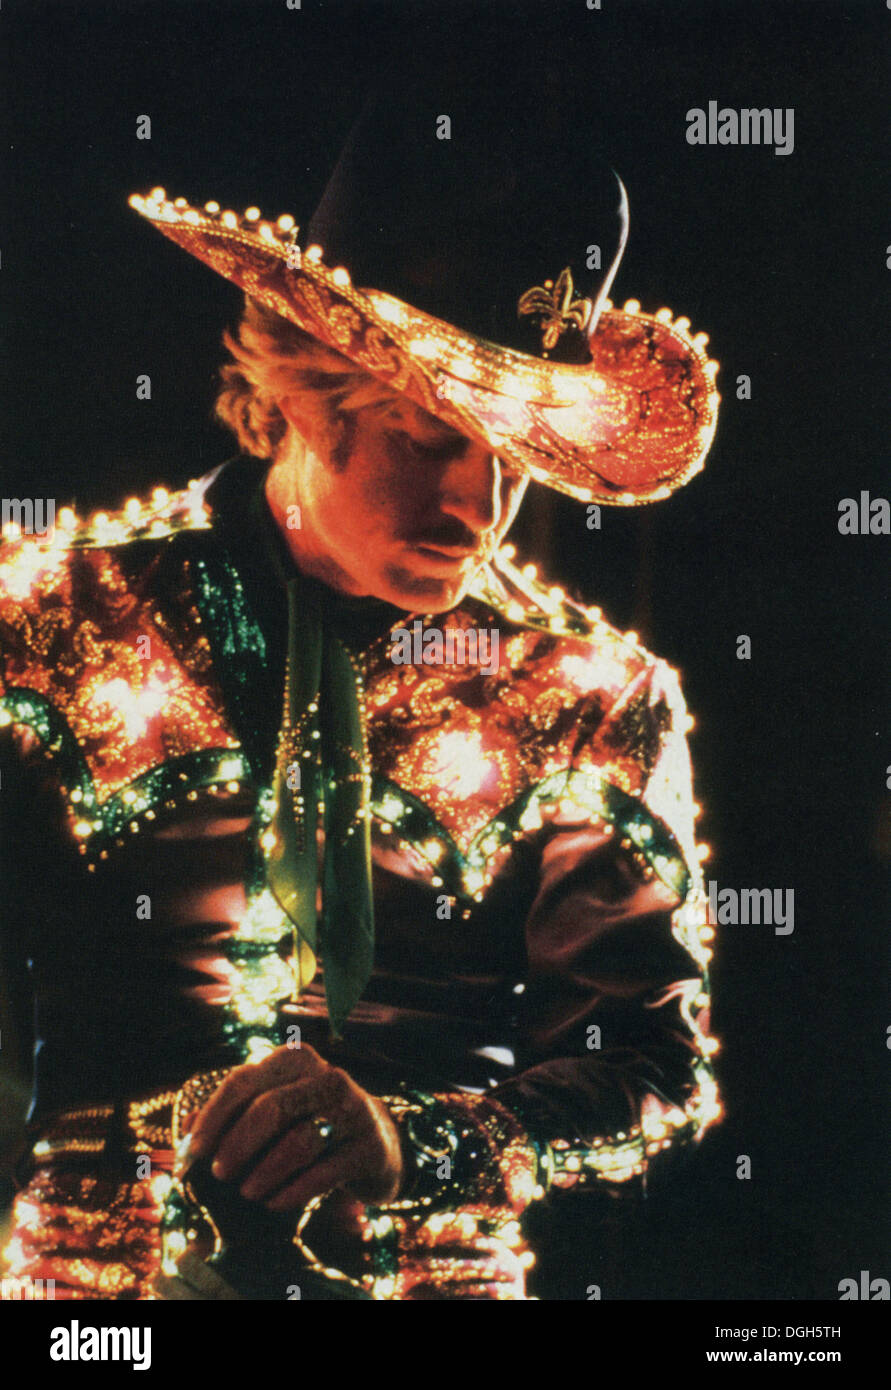 THE ELECTRIC HORSEMAN 1979 Universal Pictures film with Robert Redford Stock Photo